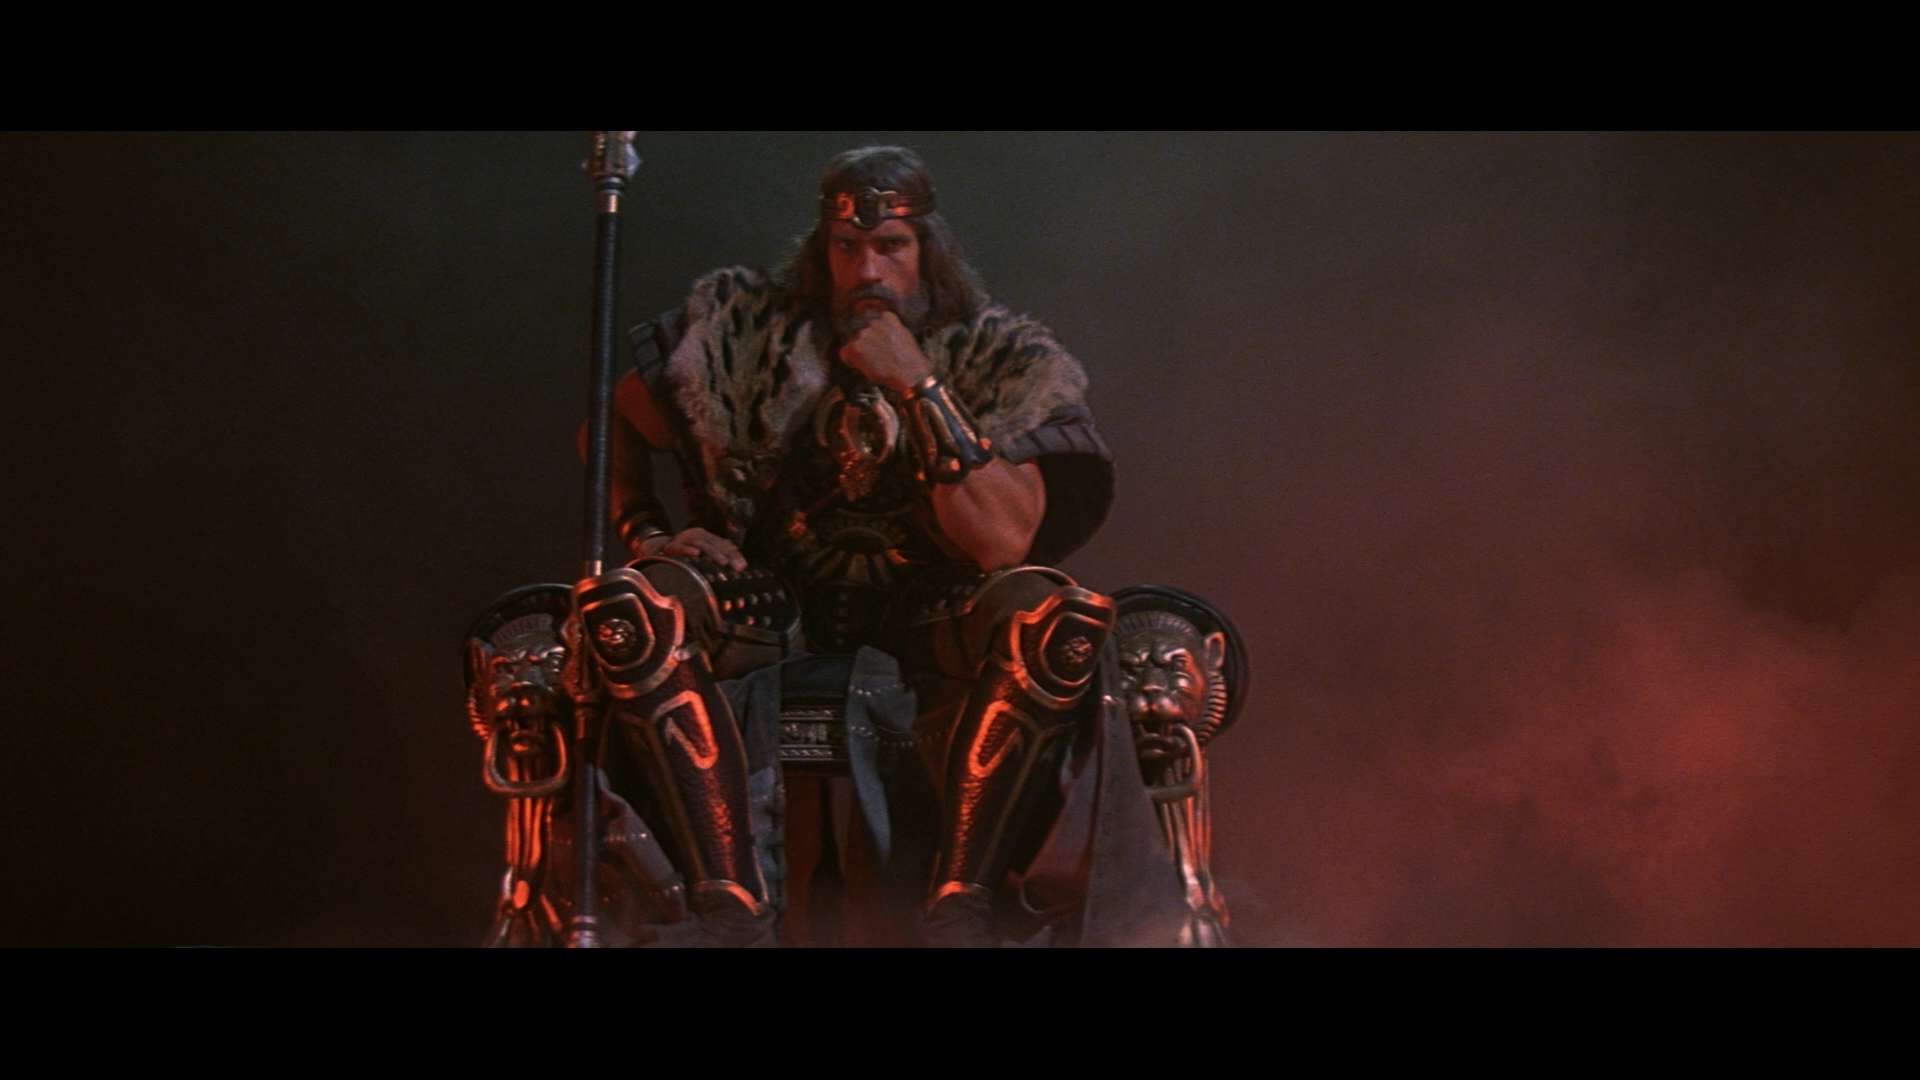 Conan The Barbarian 1982 Computer Wallpapers Desktop Backgrounds 1920x1080